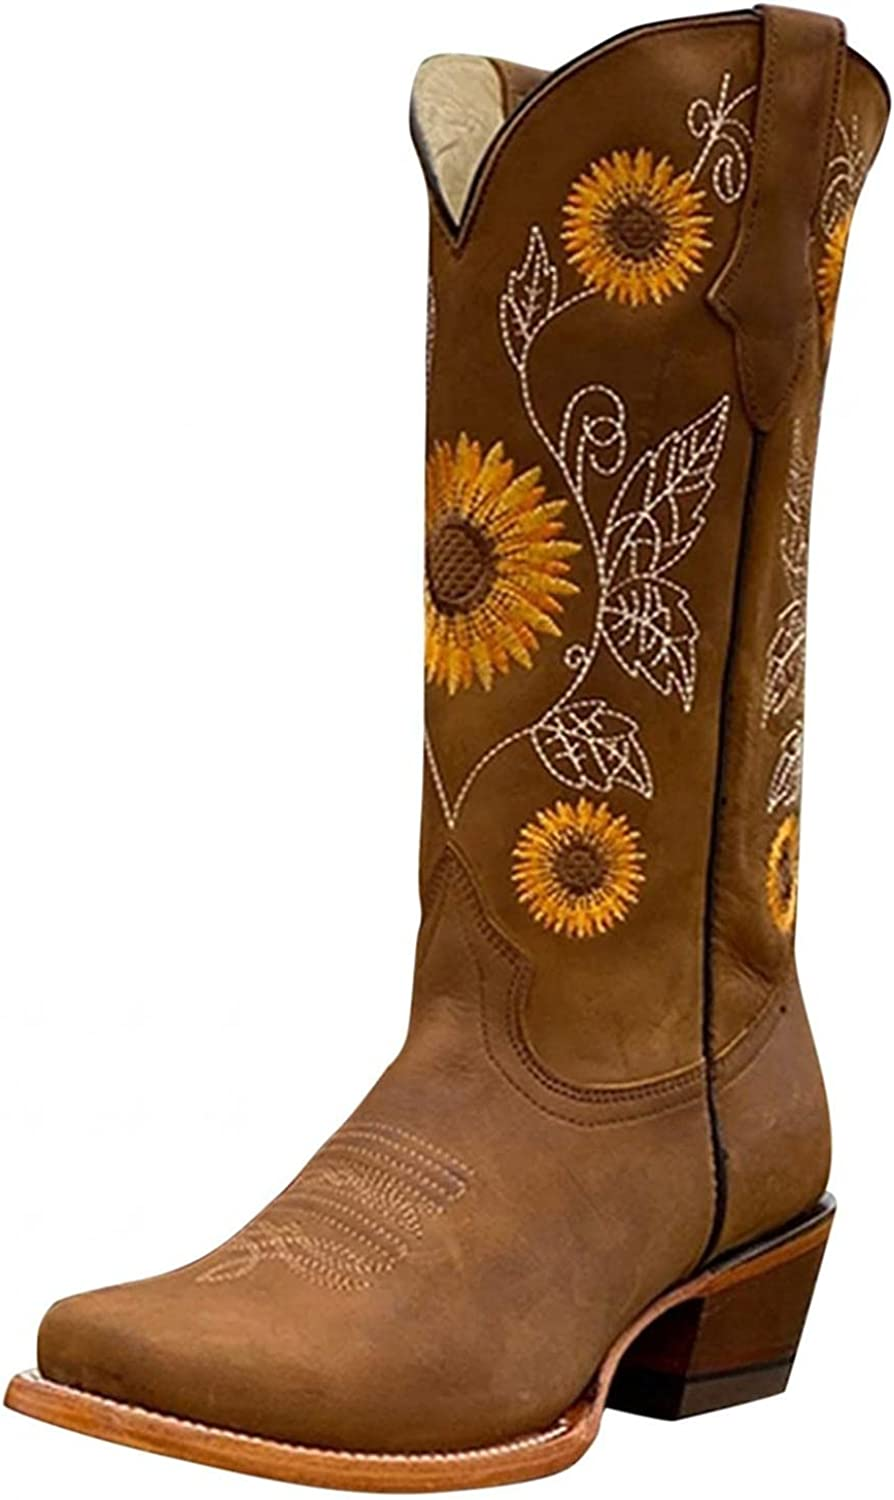 TAYBAGH Boots for Women, Womens Fashion Printed Square Low Heeled Cowgirl Western Boots Casual Pointed Toe Ankle Booties